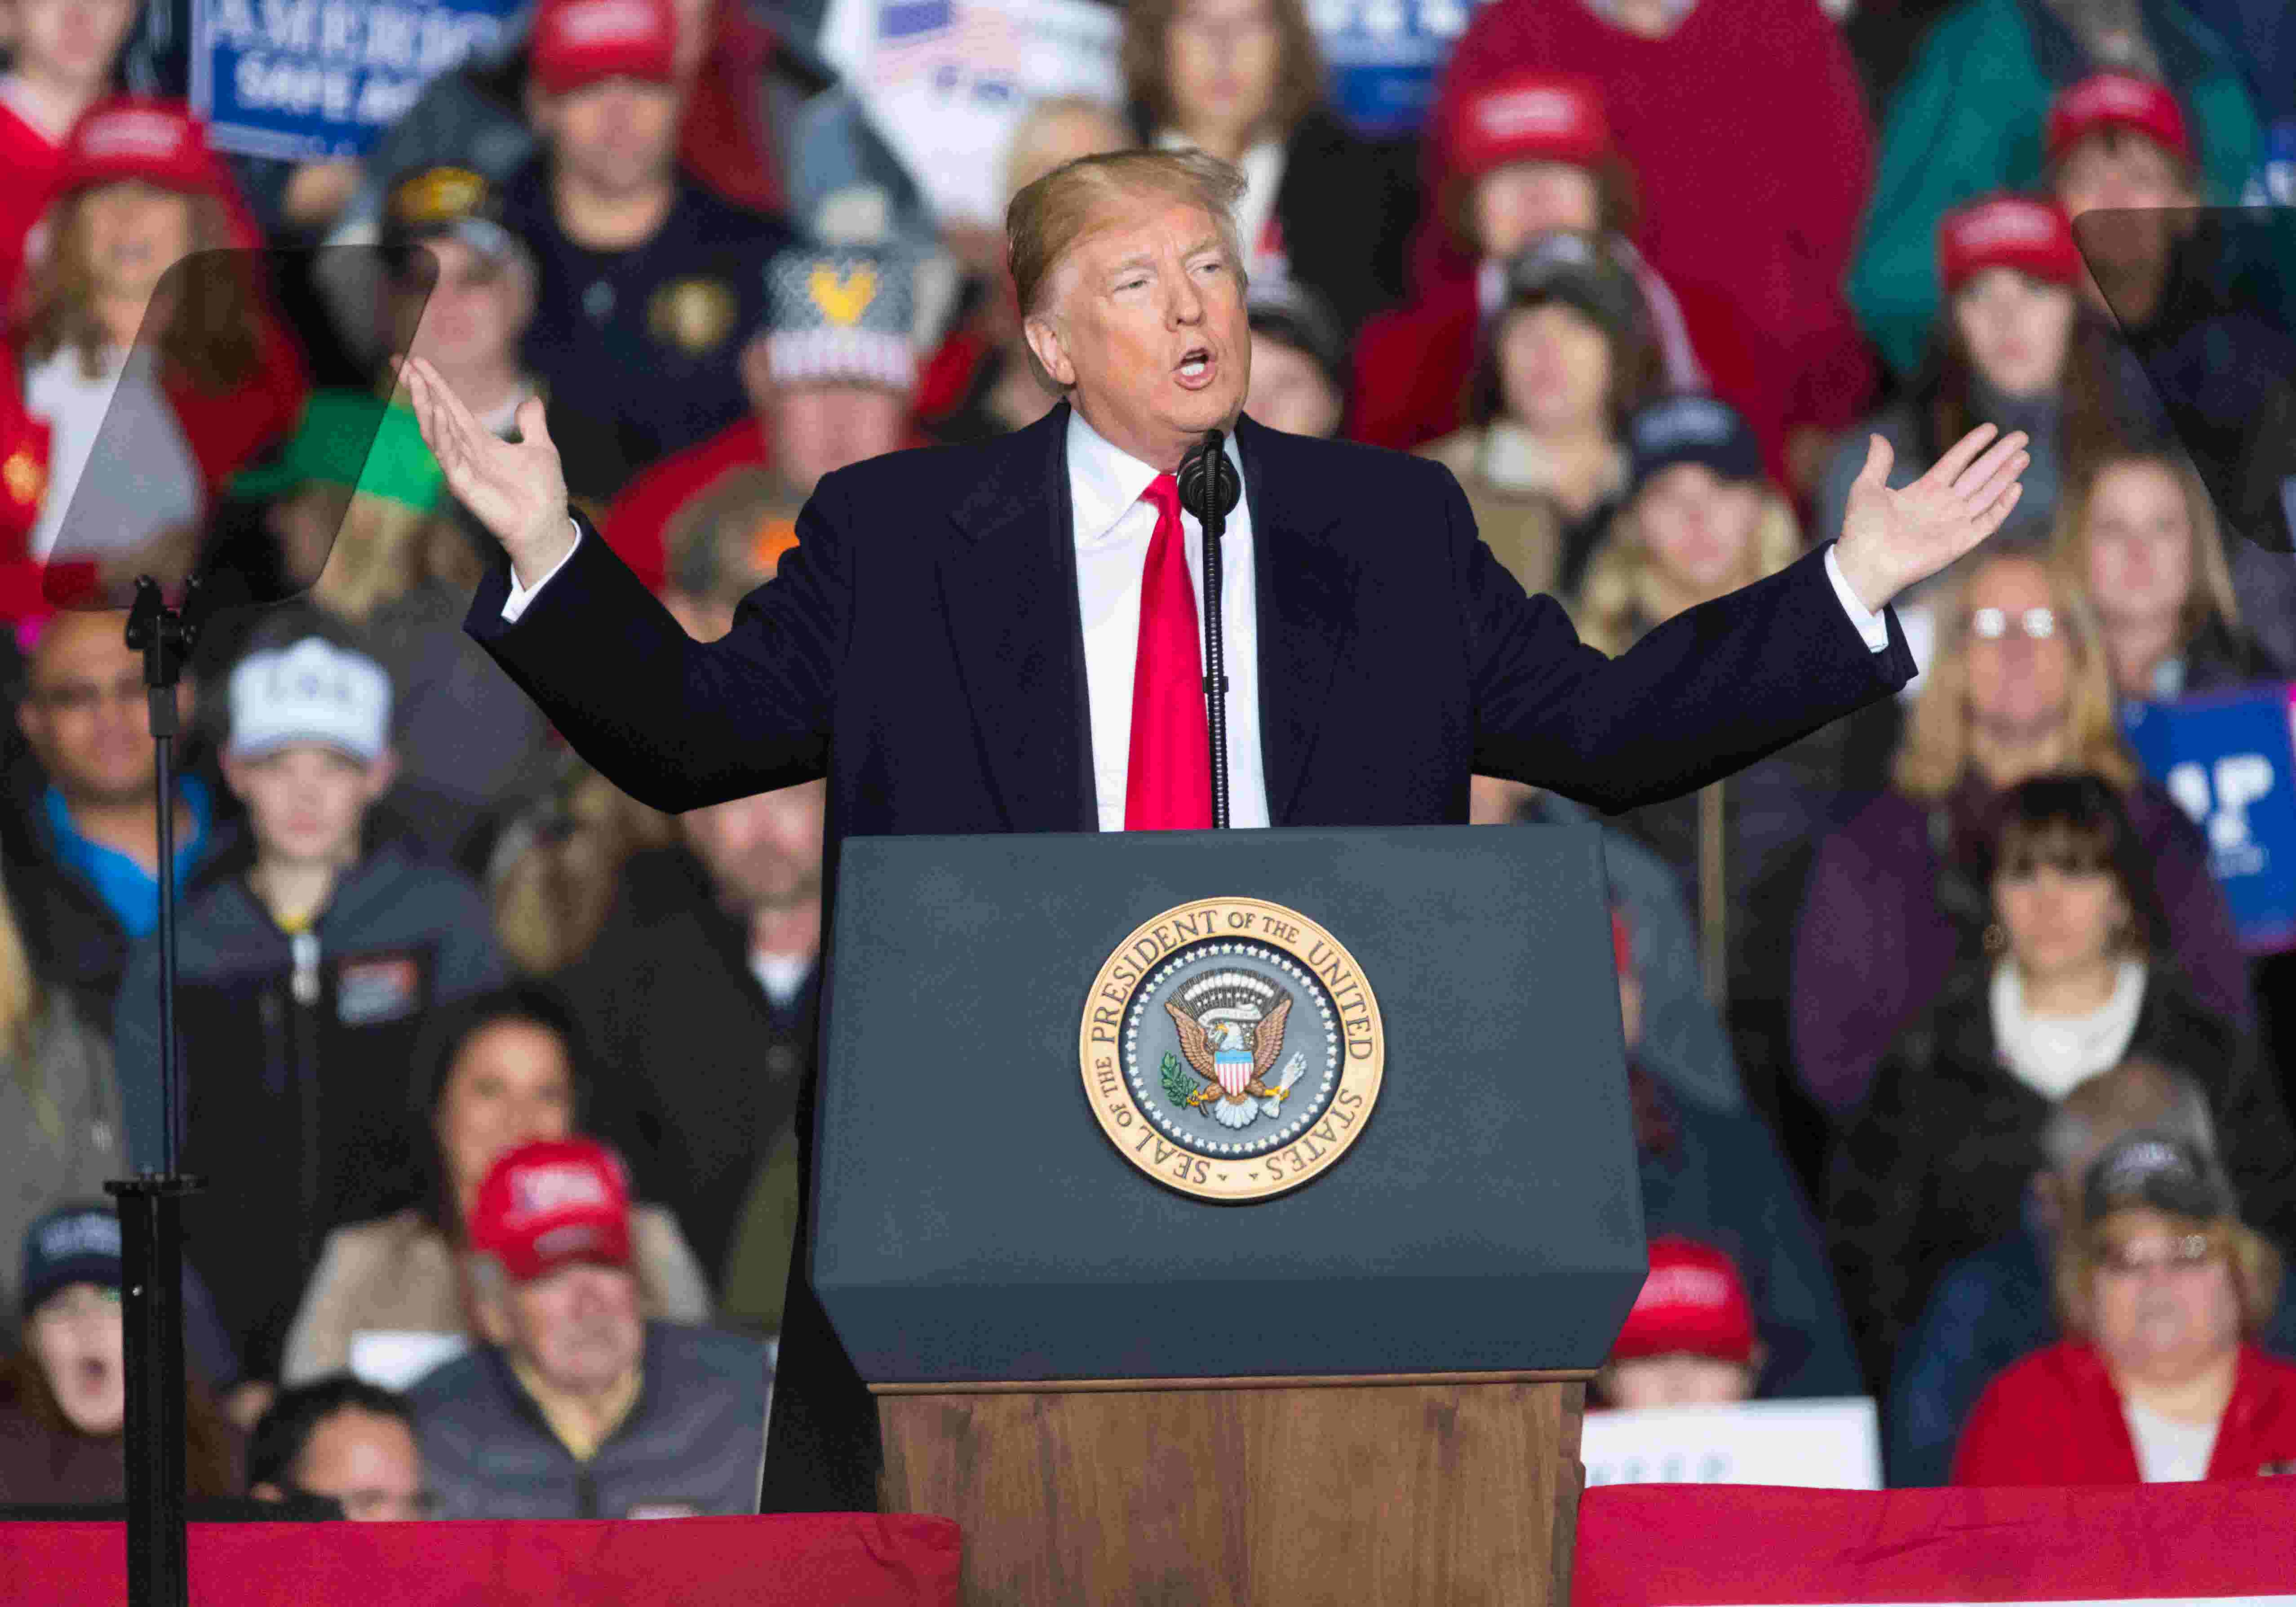 Trump to Wisconsin rally: 'Media also has responsibility to set a civil  tone'